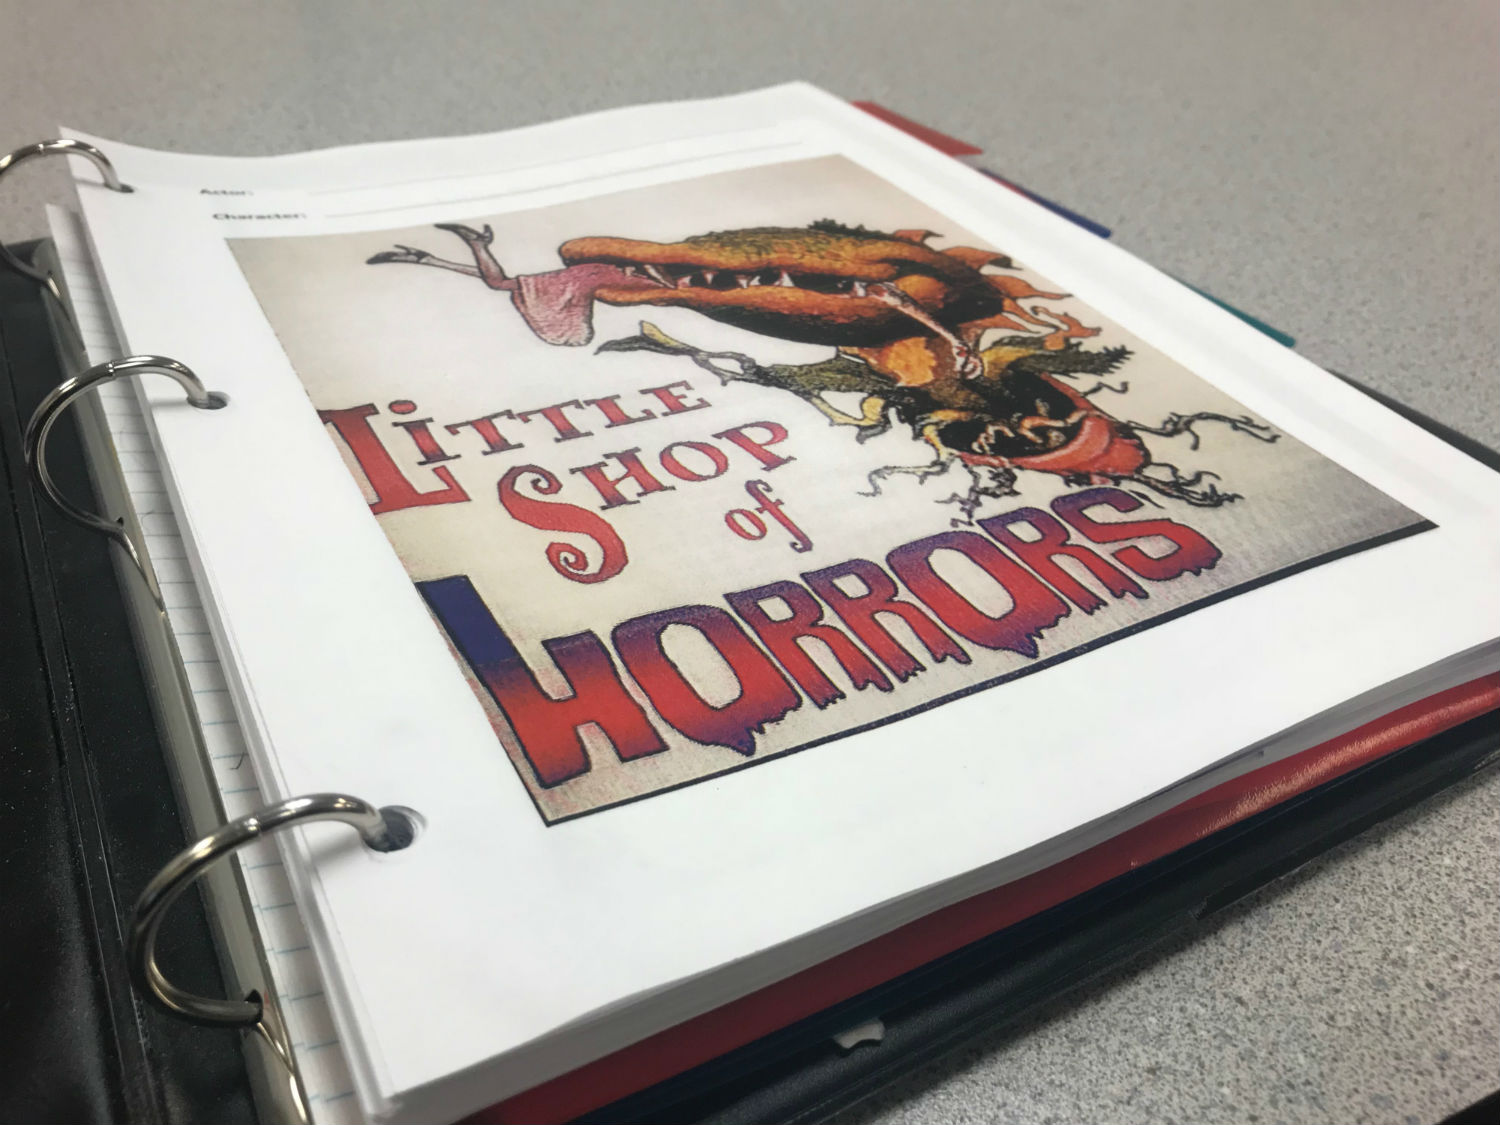 Front cover of the Little Shop of Horrors script.